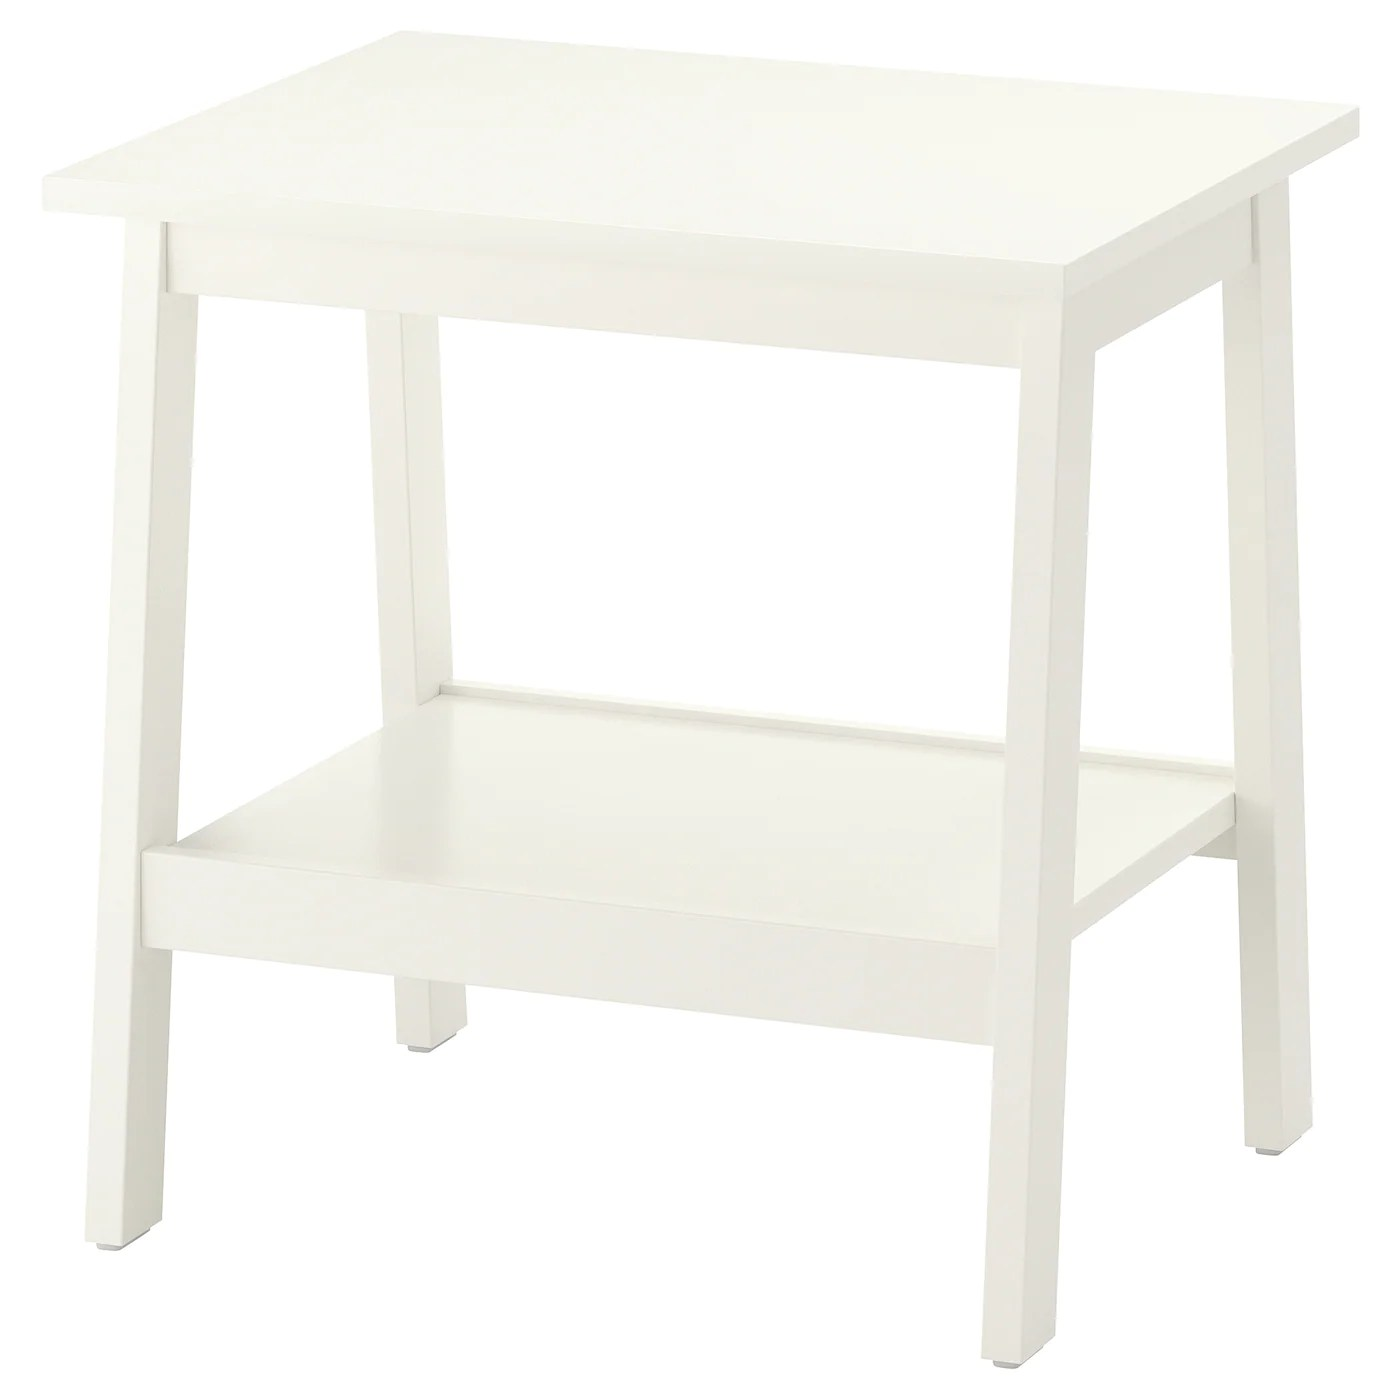 Tables Basses Et Tables D Appoint Ikea